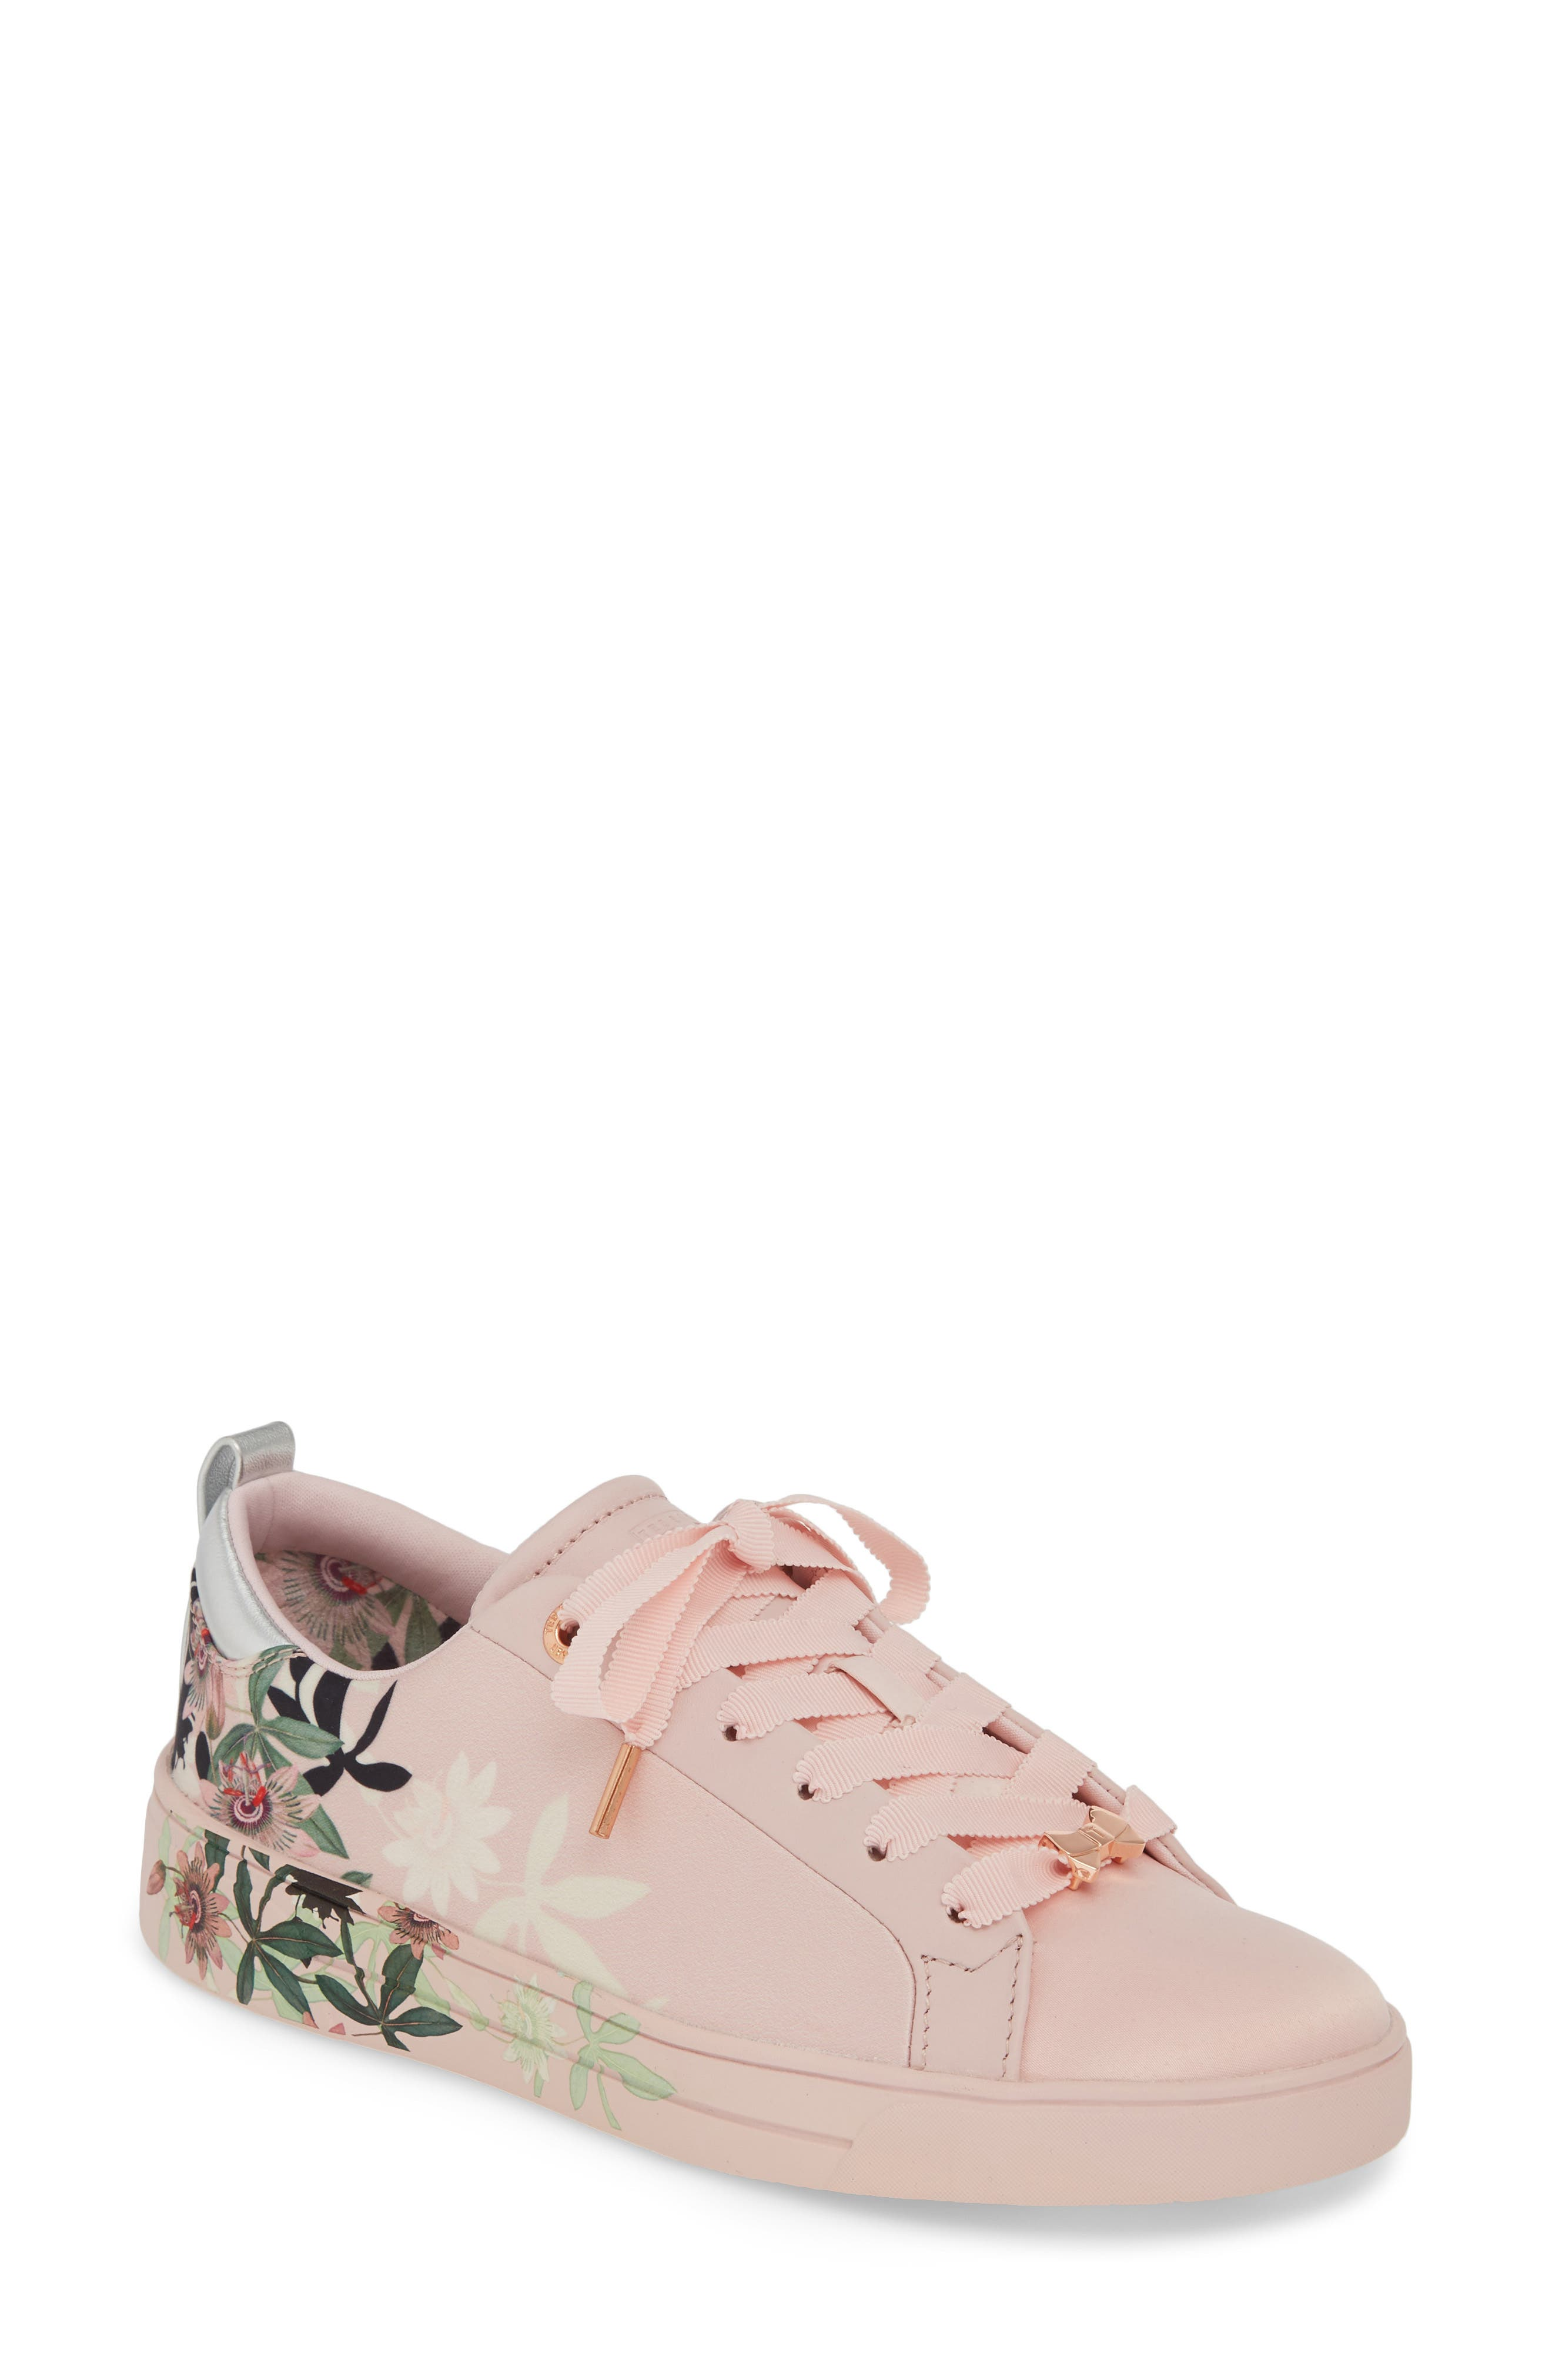 Rialy Sneaker, Main, color, PINK ILLUSION SATIN